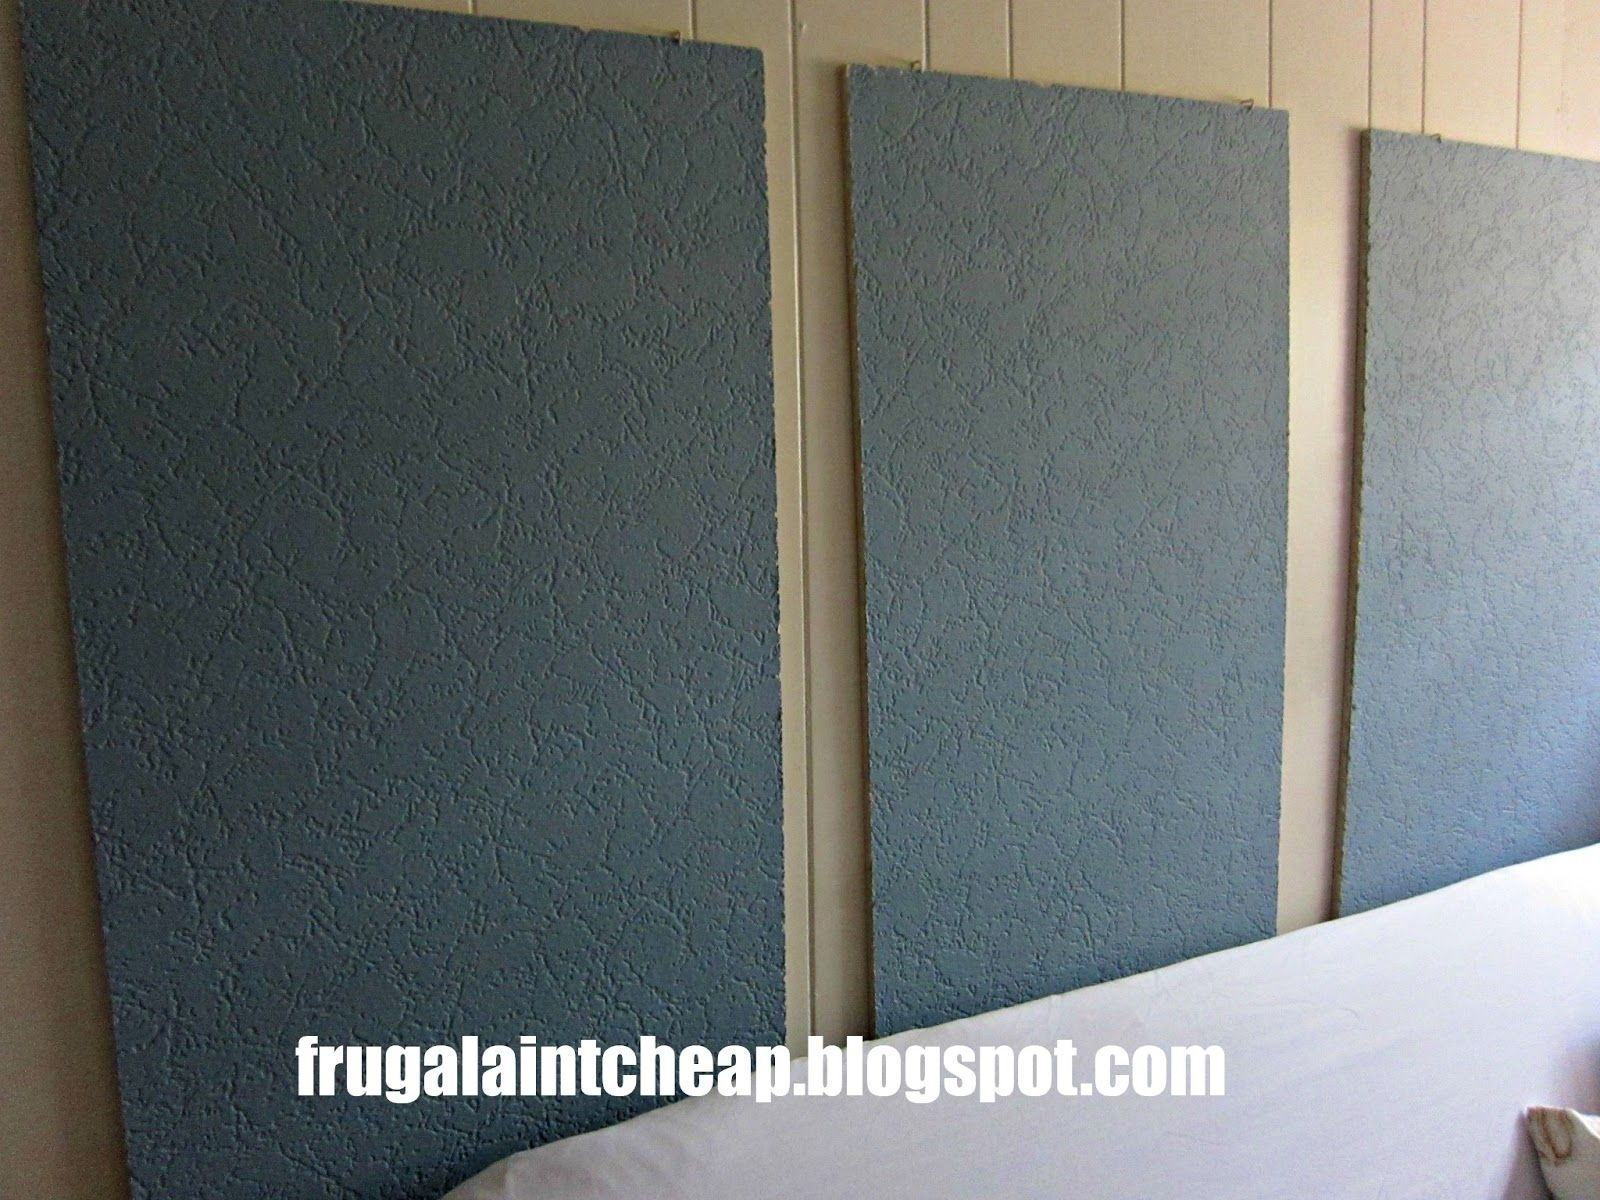 Frugal Ainu0027t Cheap: Soundproofing A Room   Need To Soundproof My Basement    On A Tight Budget : )